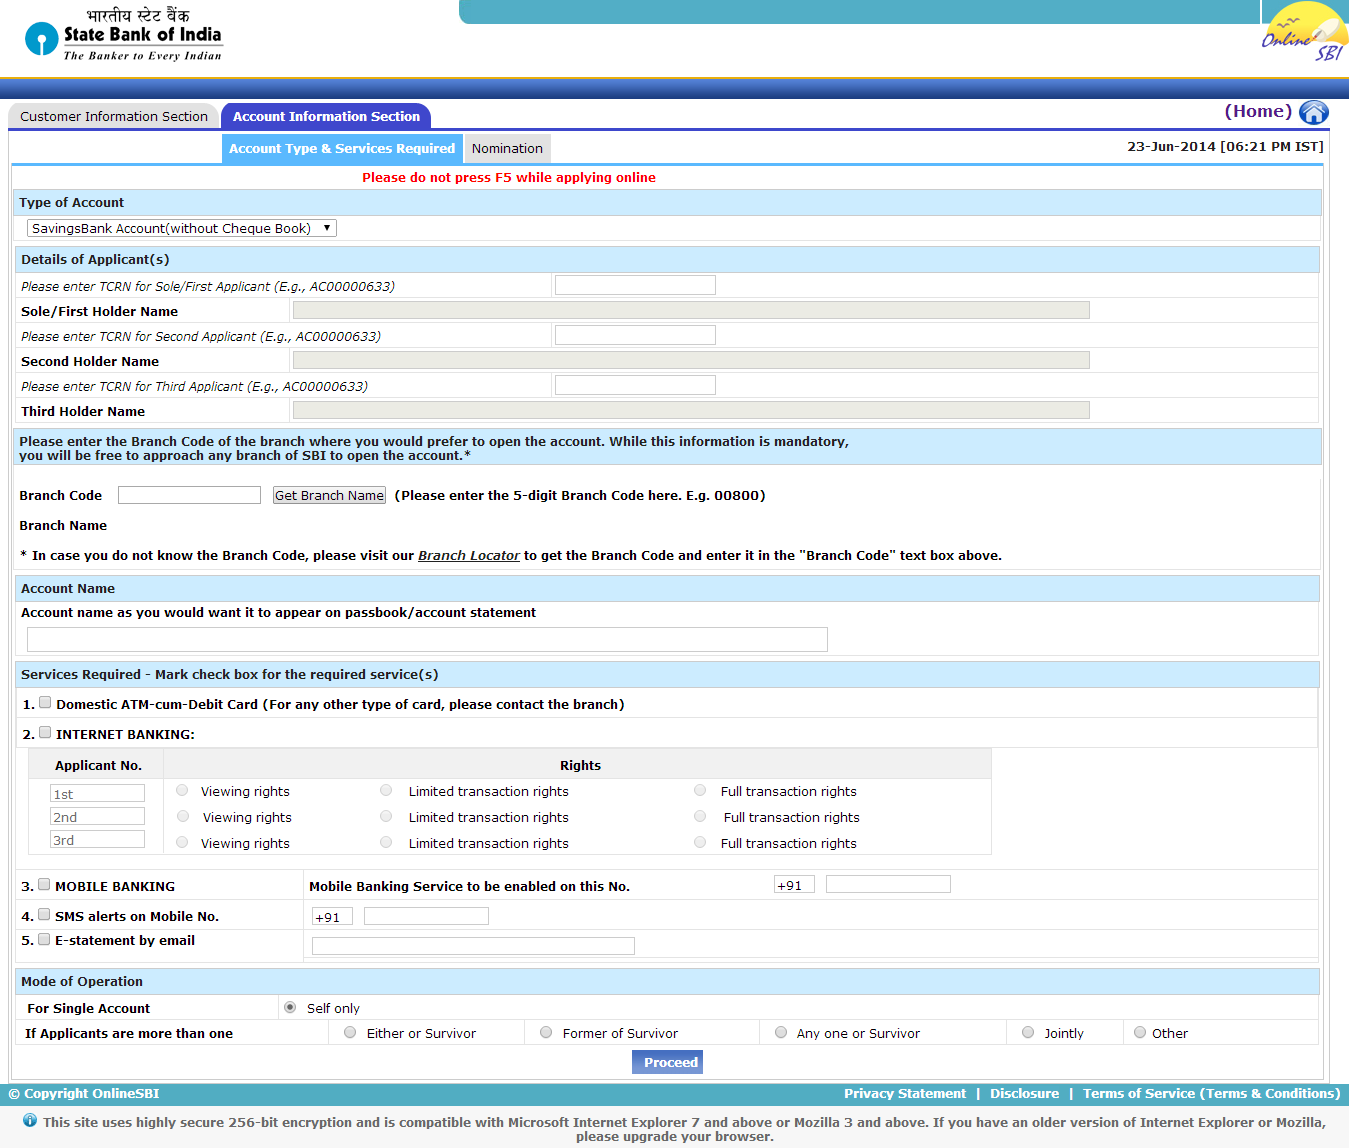 how to get bank statement from sbi